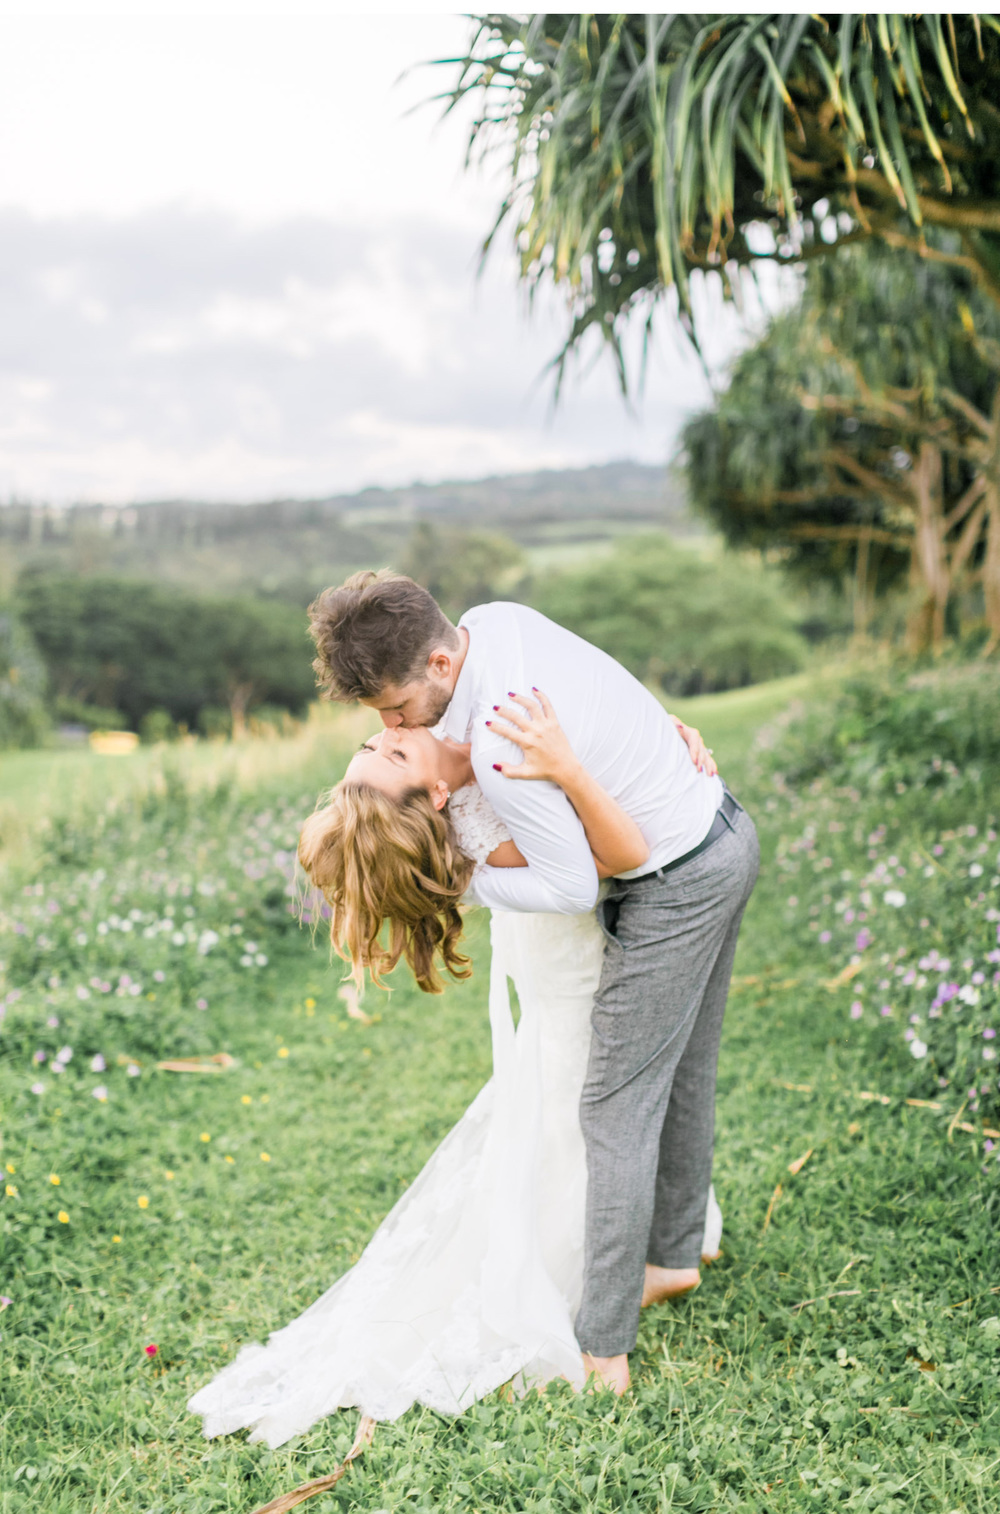 Natalie-Schutt-Photography---Costa-Rica-Wedding-Photographer_01.jpg